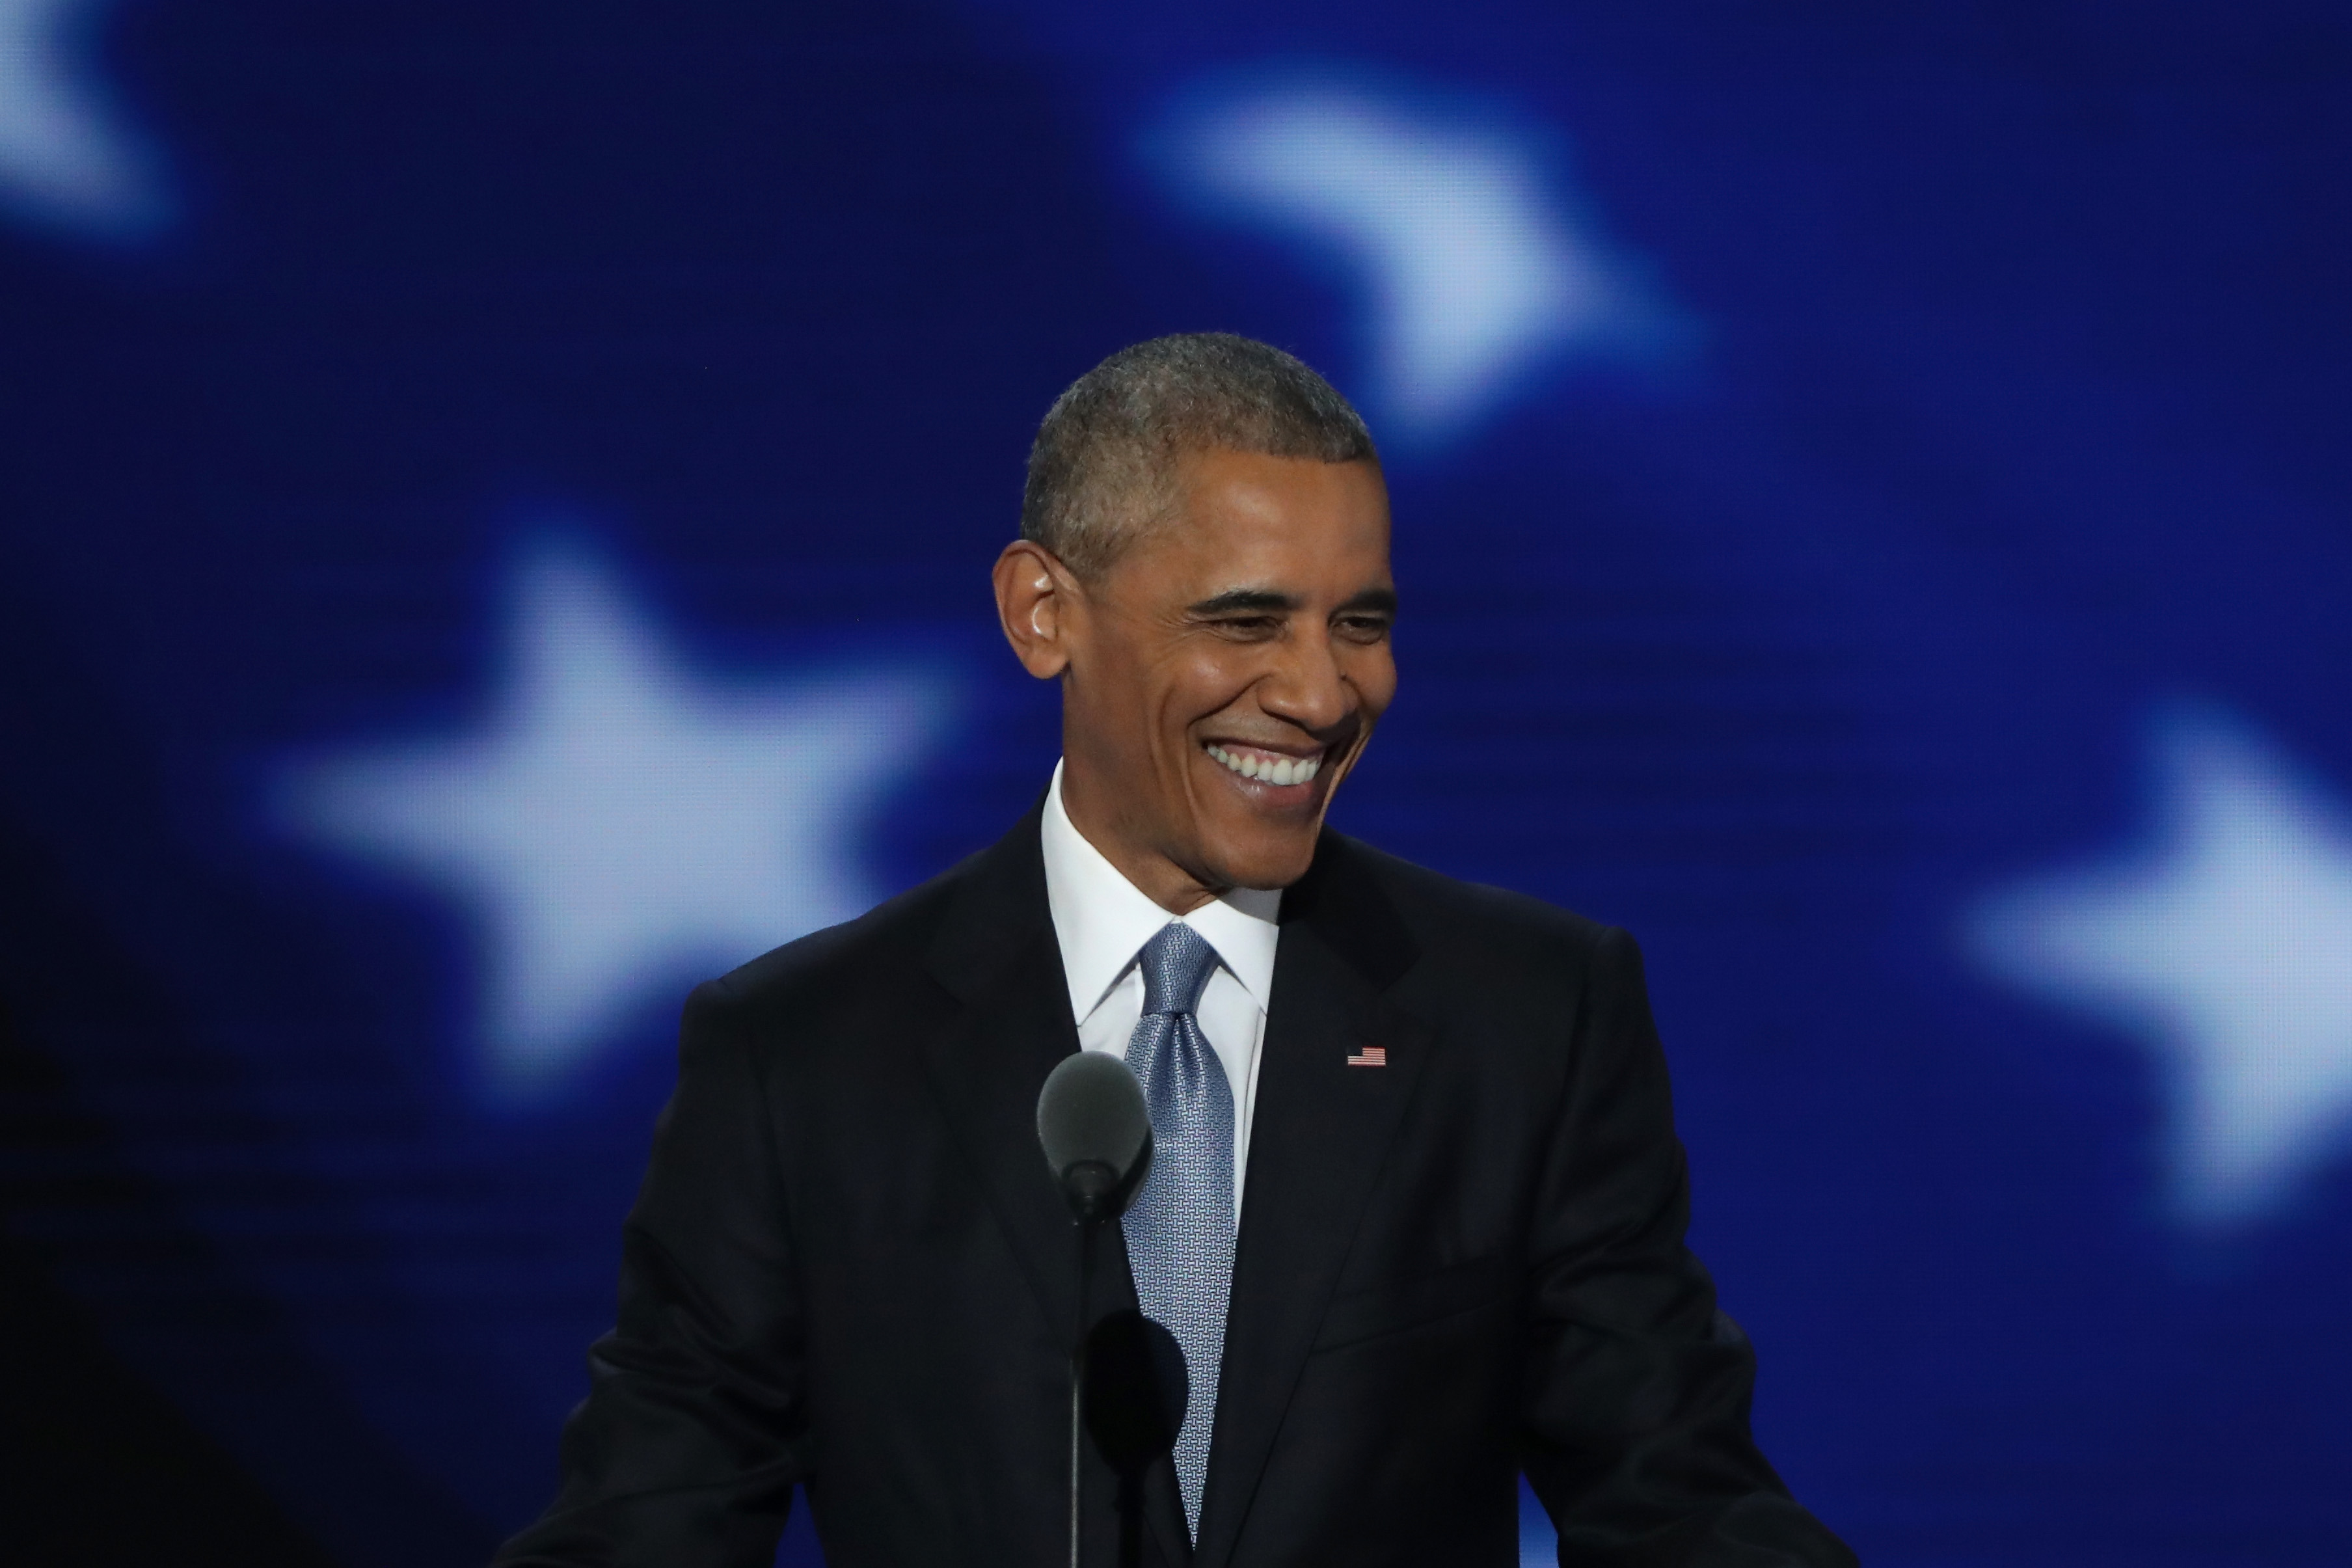 President Barack Obama acknowledges the crowd as he arrives on stage to deliver remarks. (Getty Images)